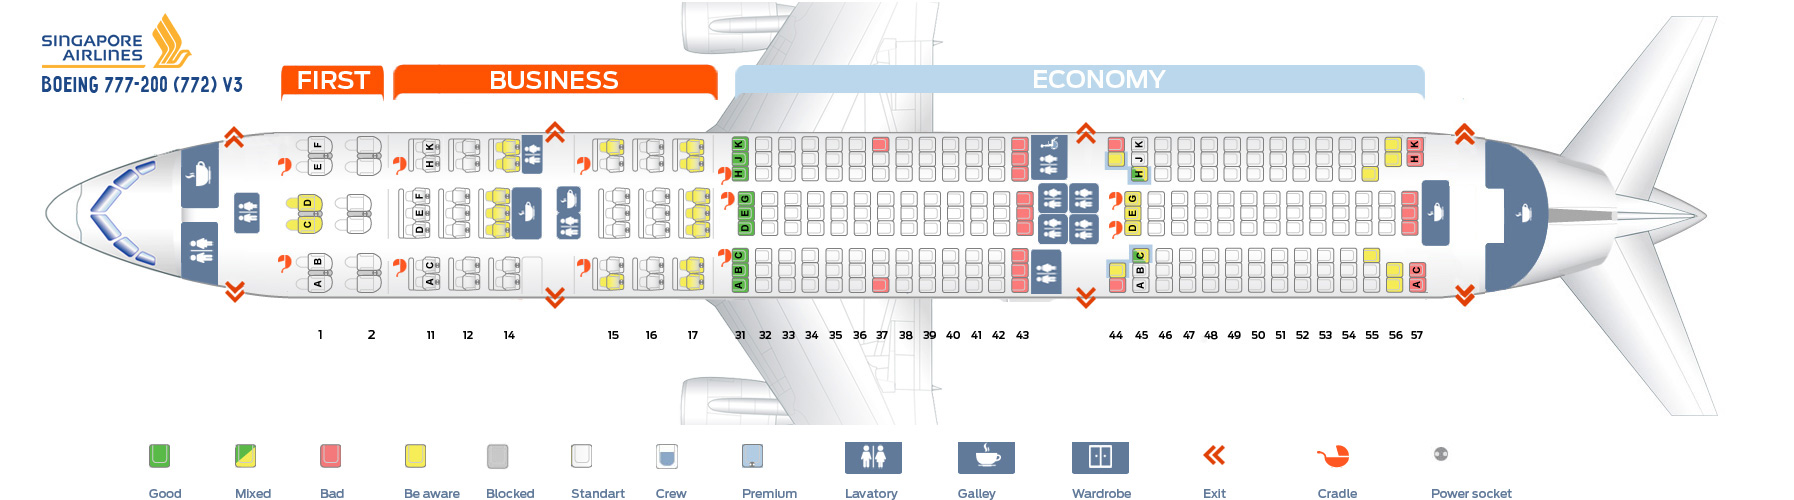 Seat Map Boeing 777-200 V3 Singapore Airlines